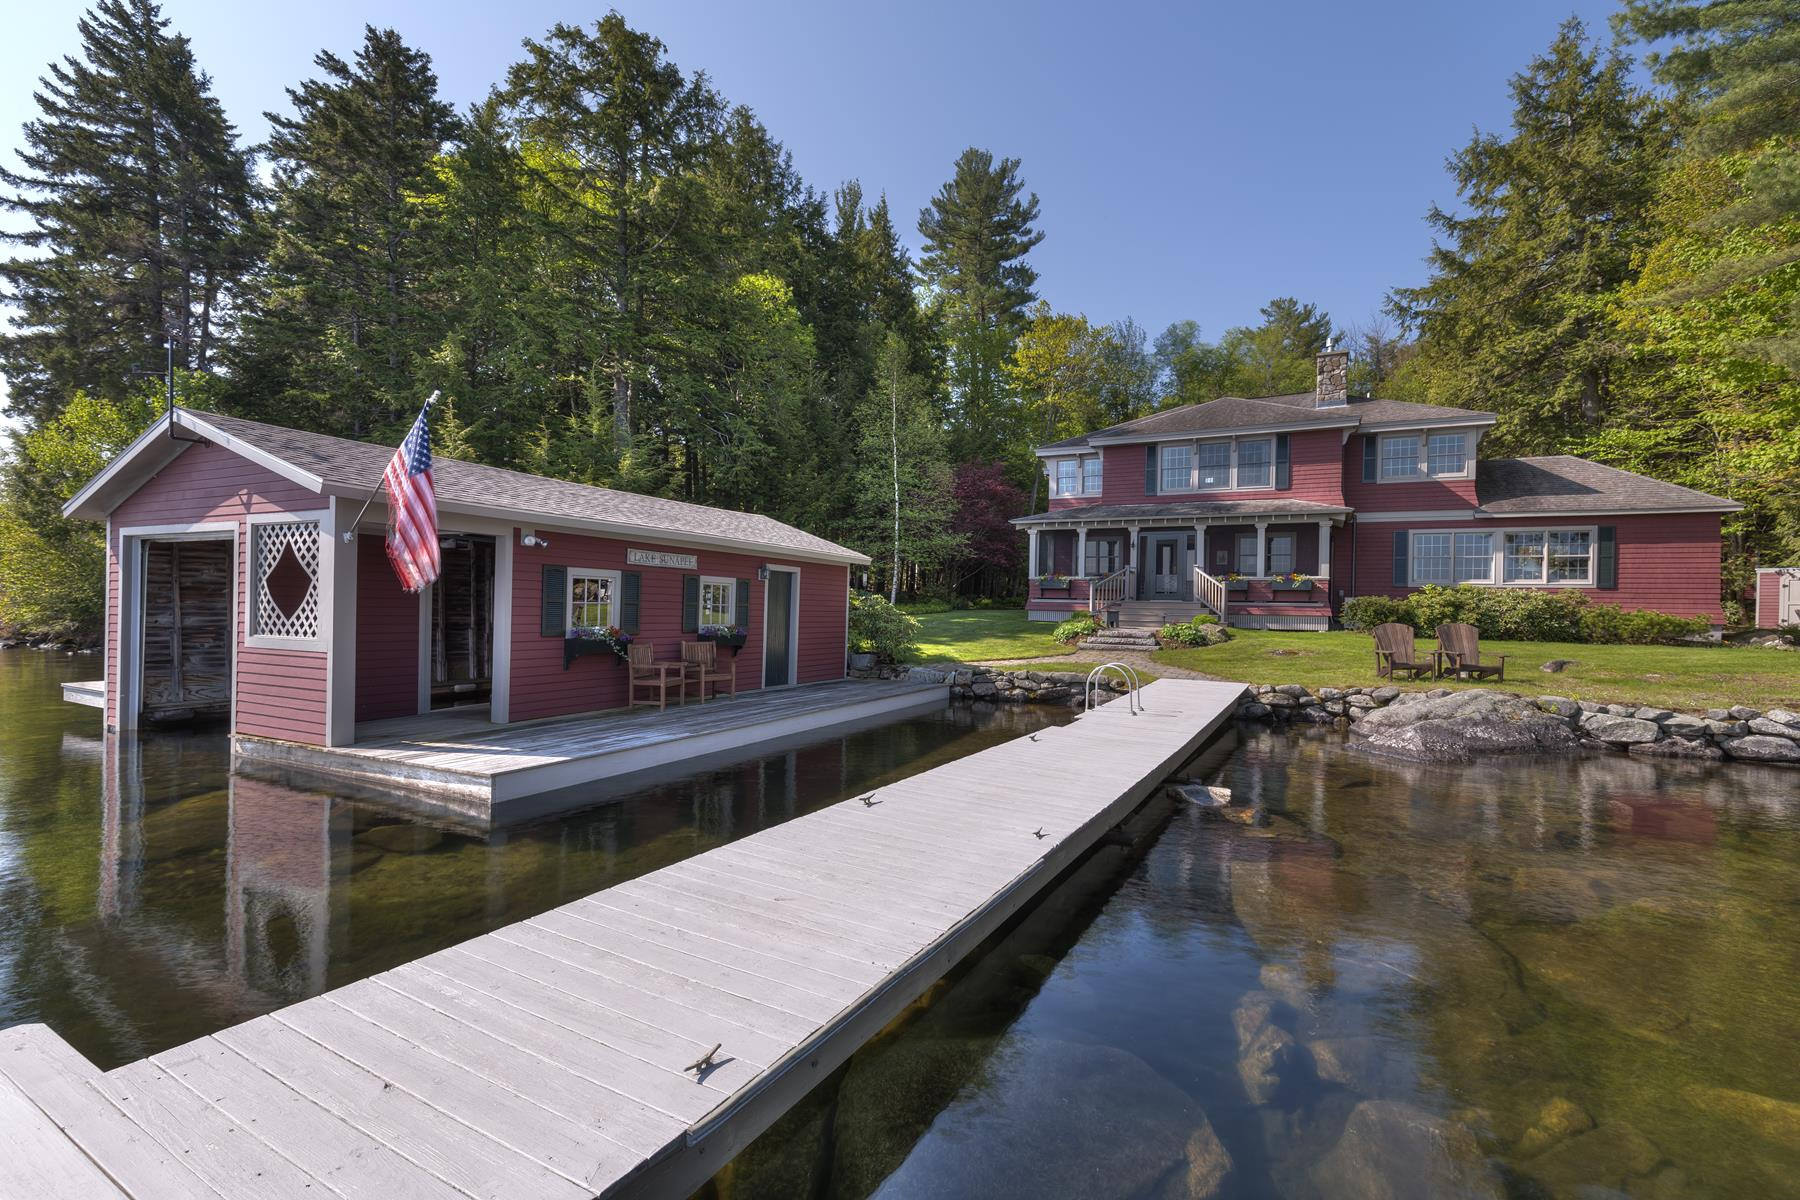 Single Family Home for Sale at Lake, Sunapee Lake Ave Sunapee, New Hampshire, 03782 United States